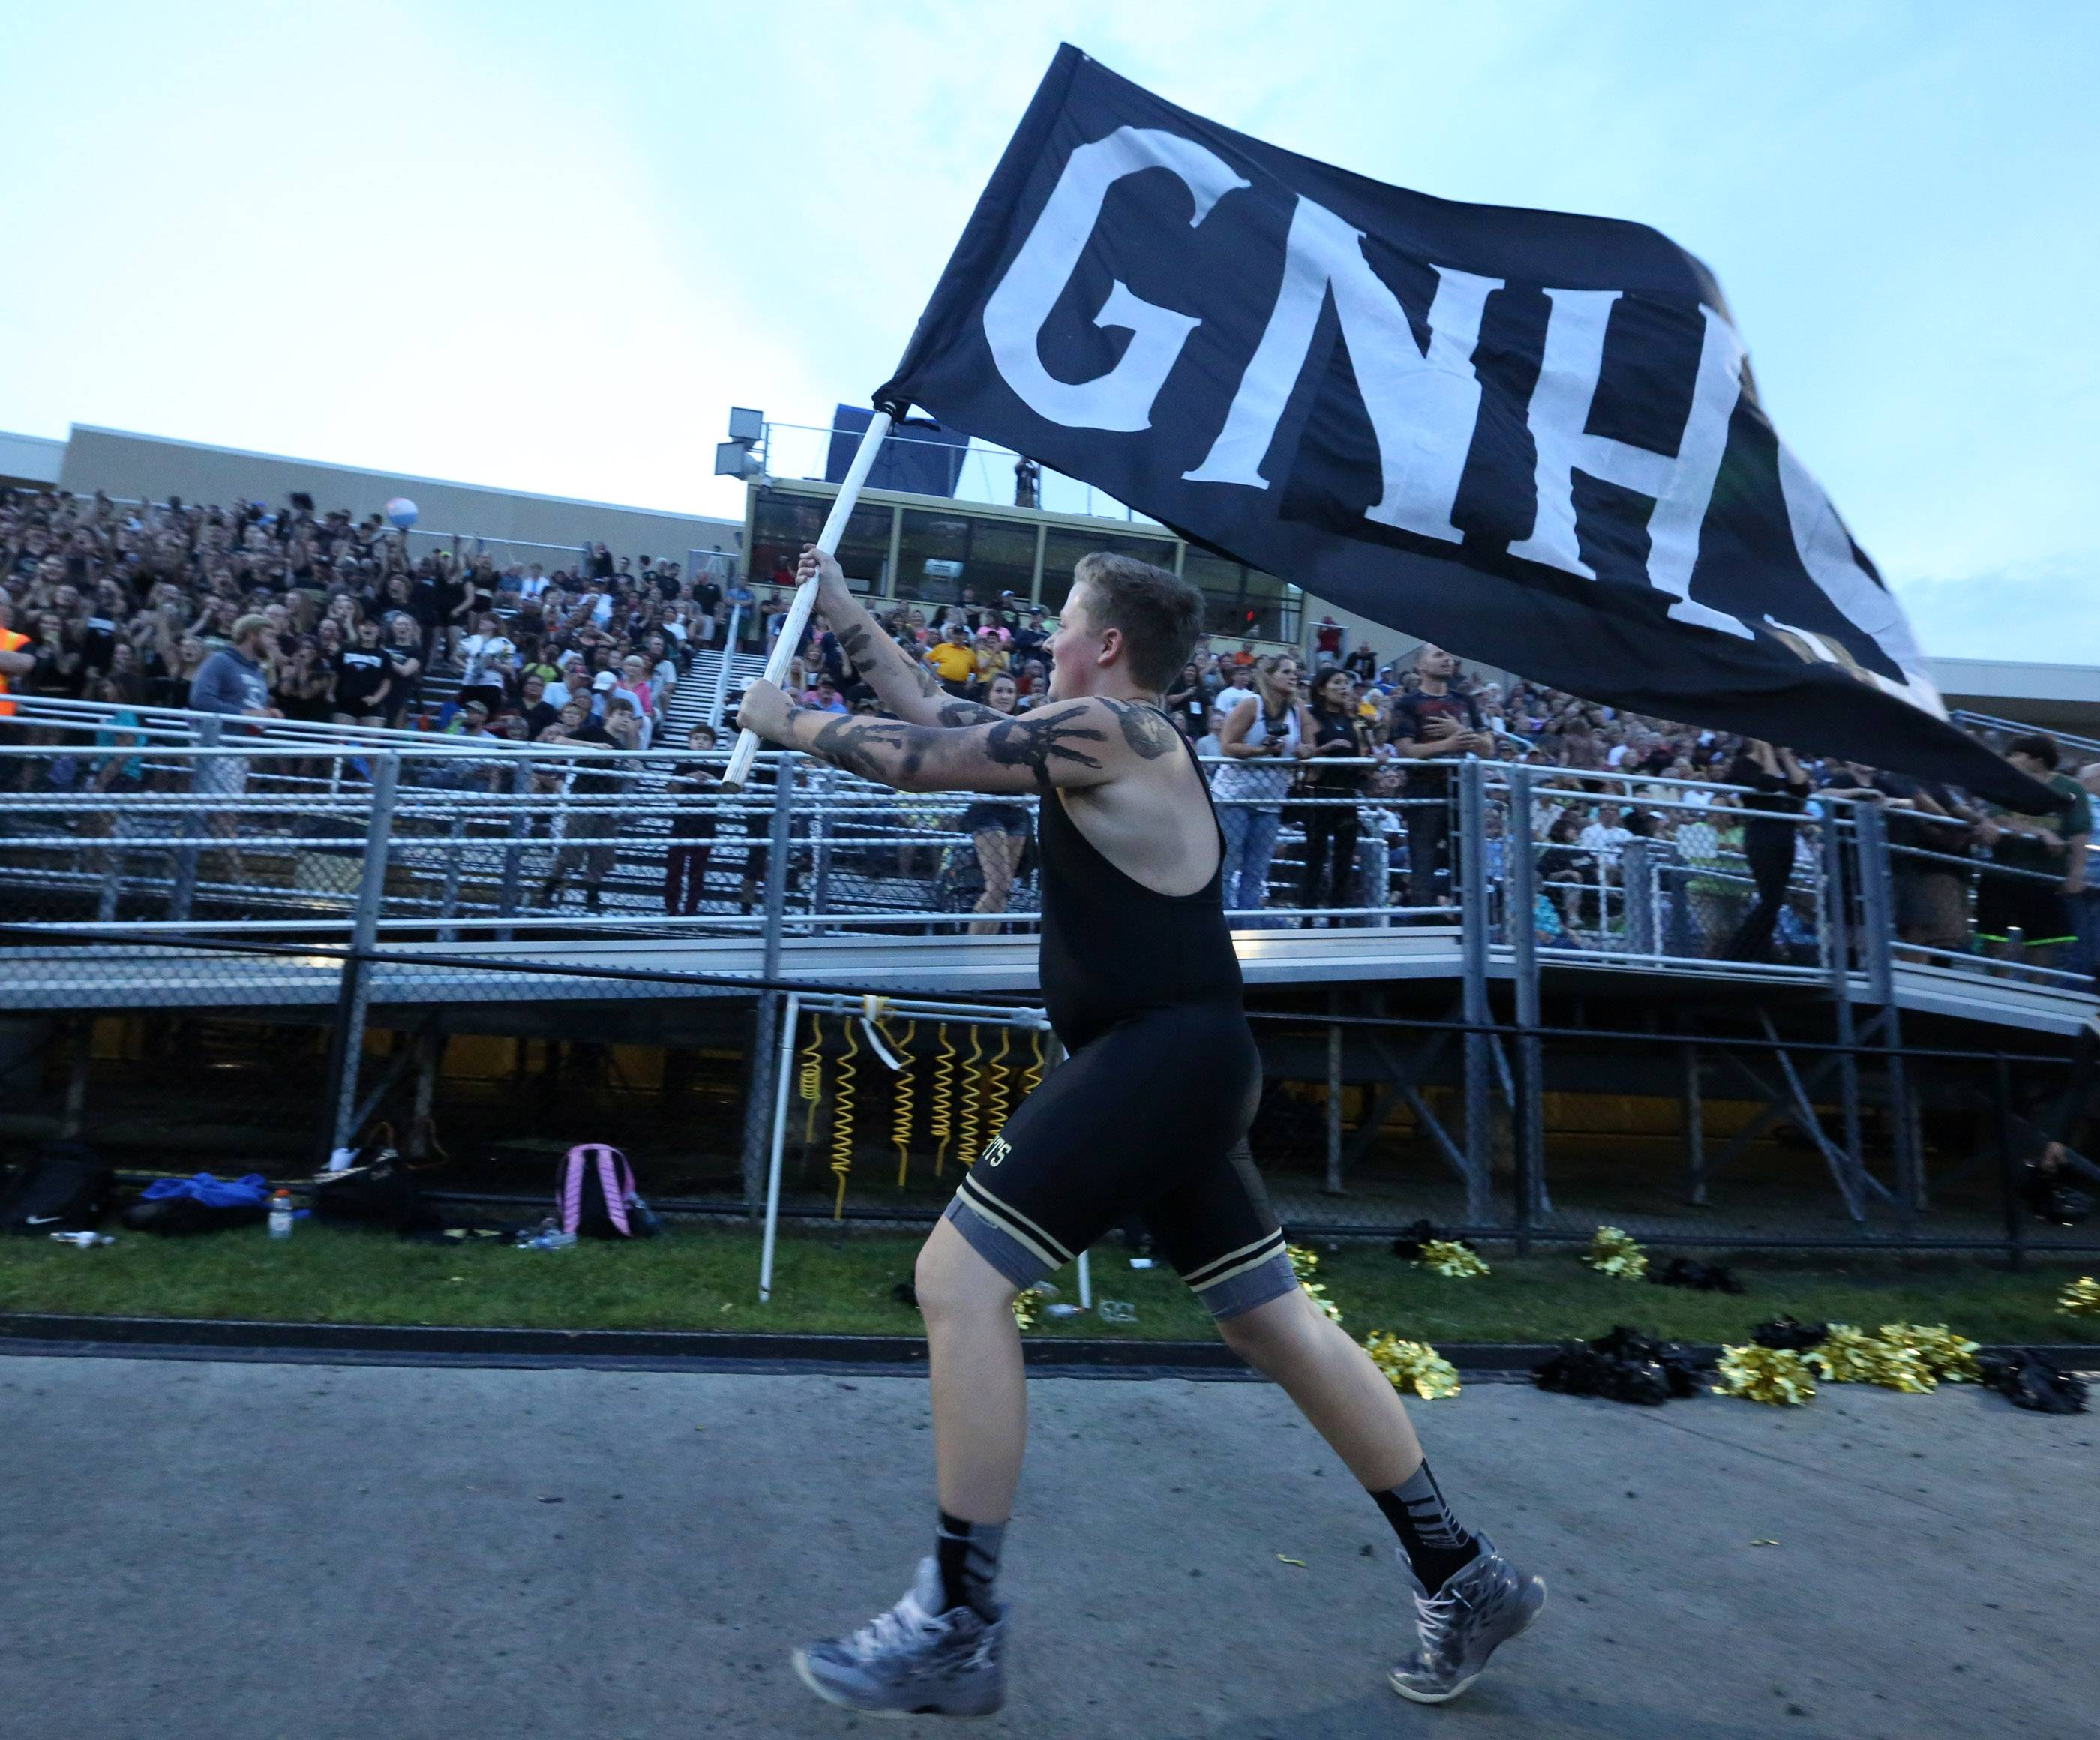 Grayslake North senior Casey Shreiner runs a flag along the sideline to fire up the home fans against visiting Lakes on Friday.